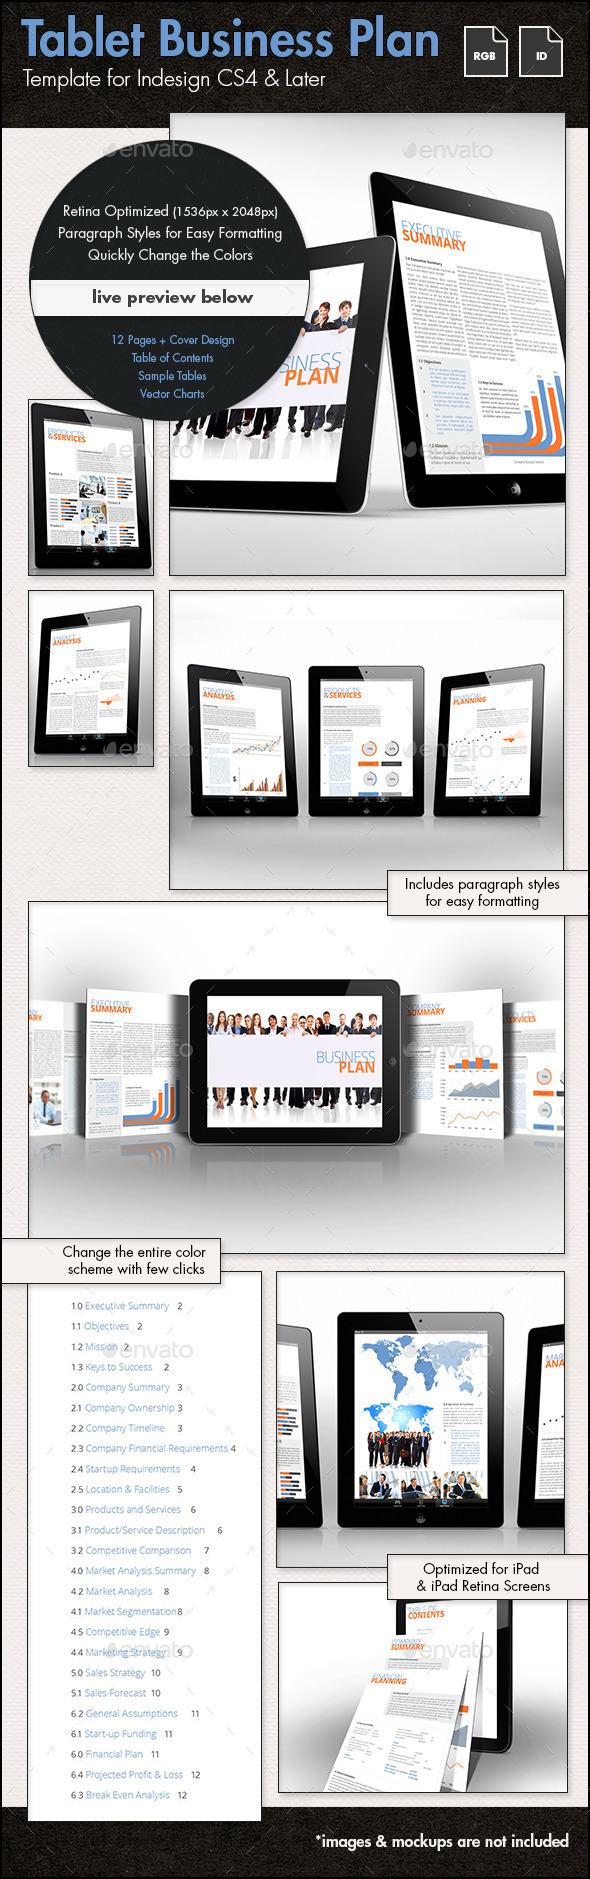 Business Plan Template for Tablets - ePublishing